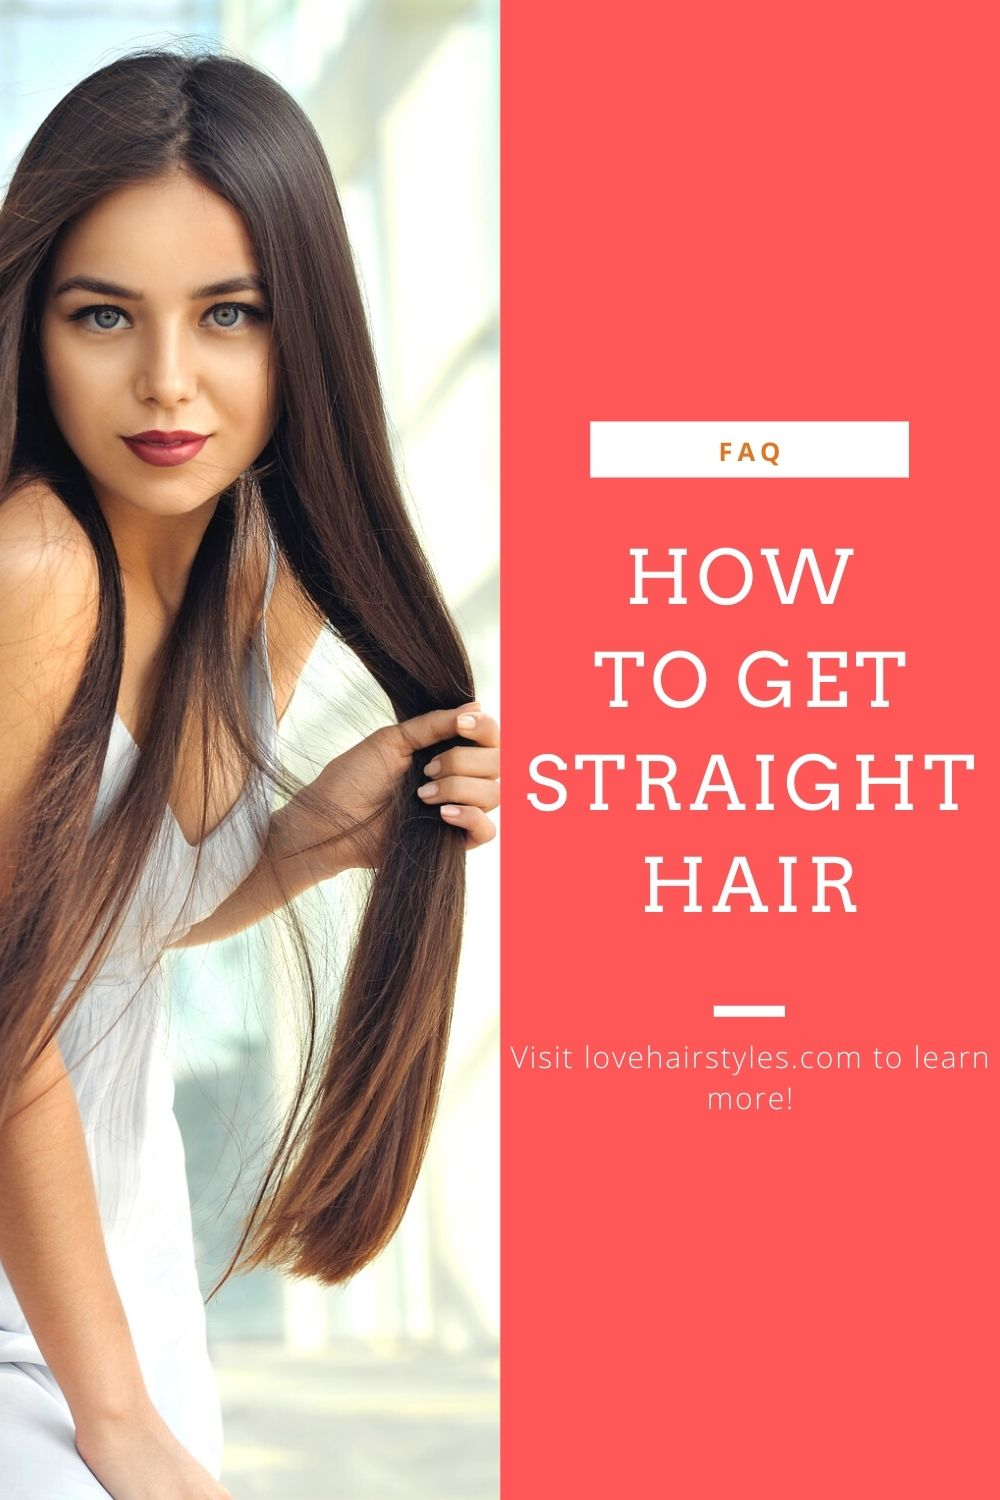 How can I get perfectly straight hair? - Top Questions Answered